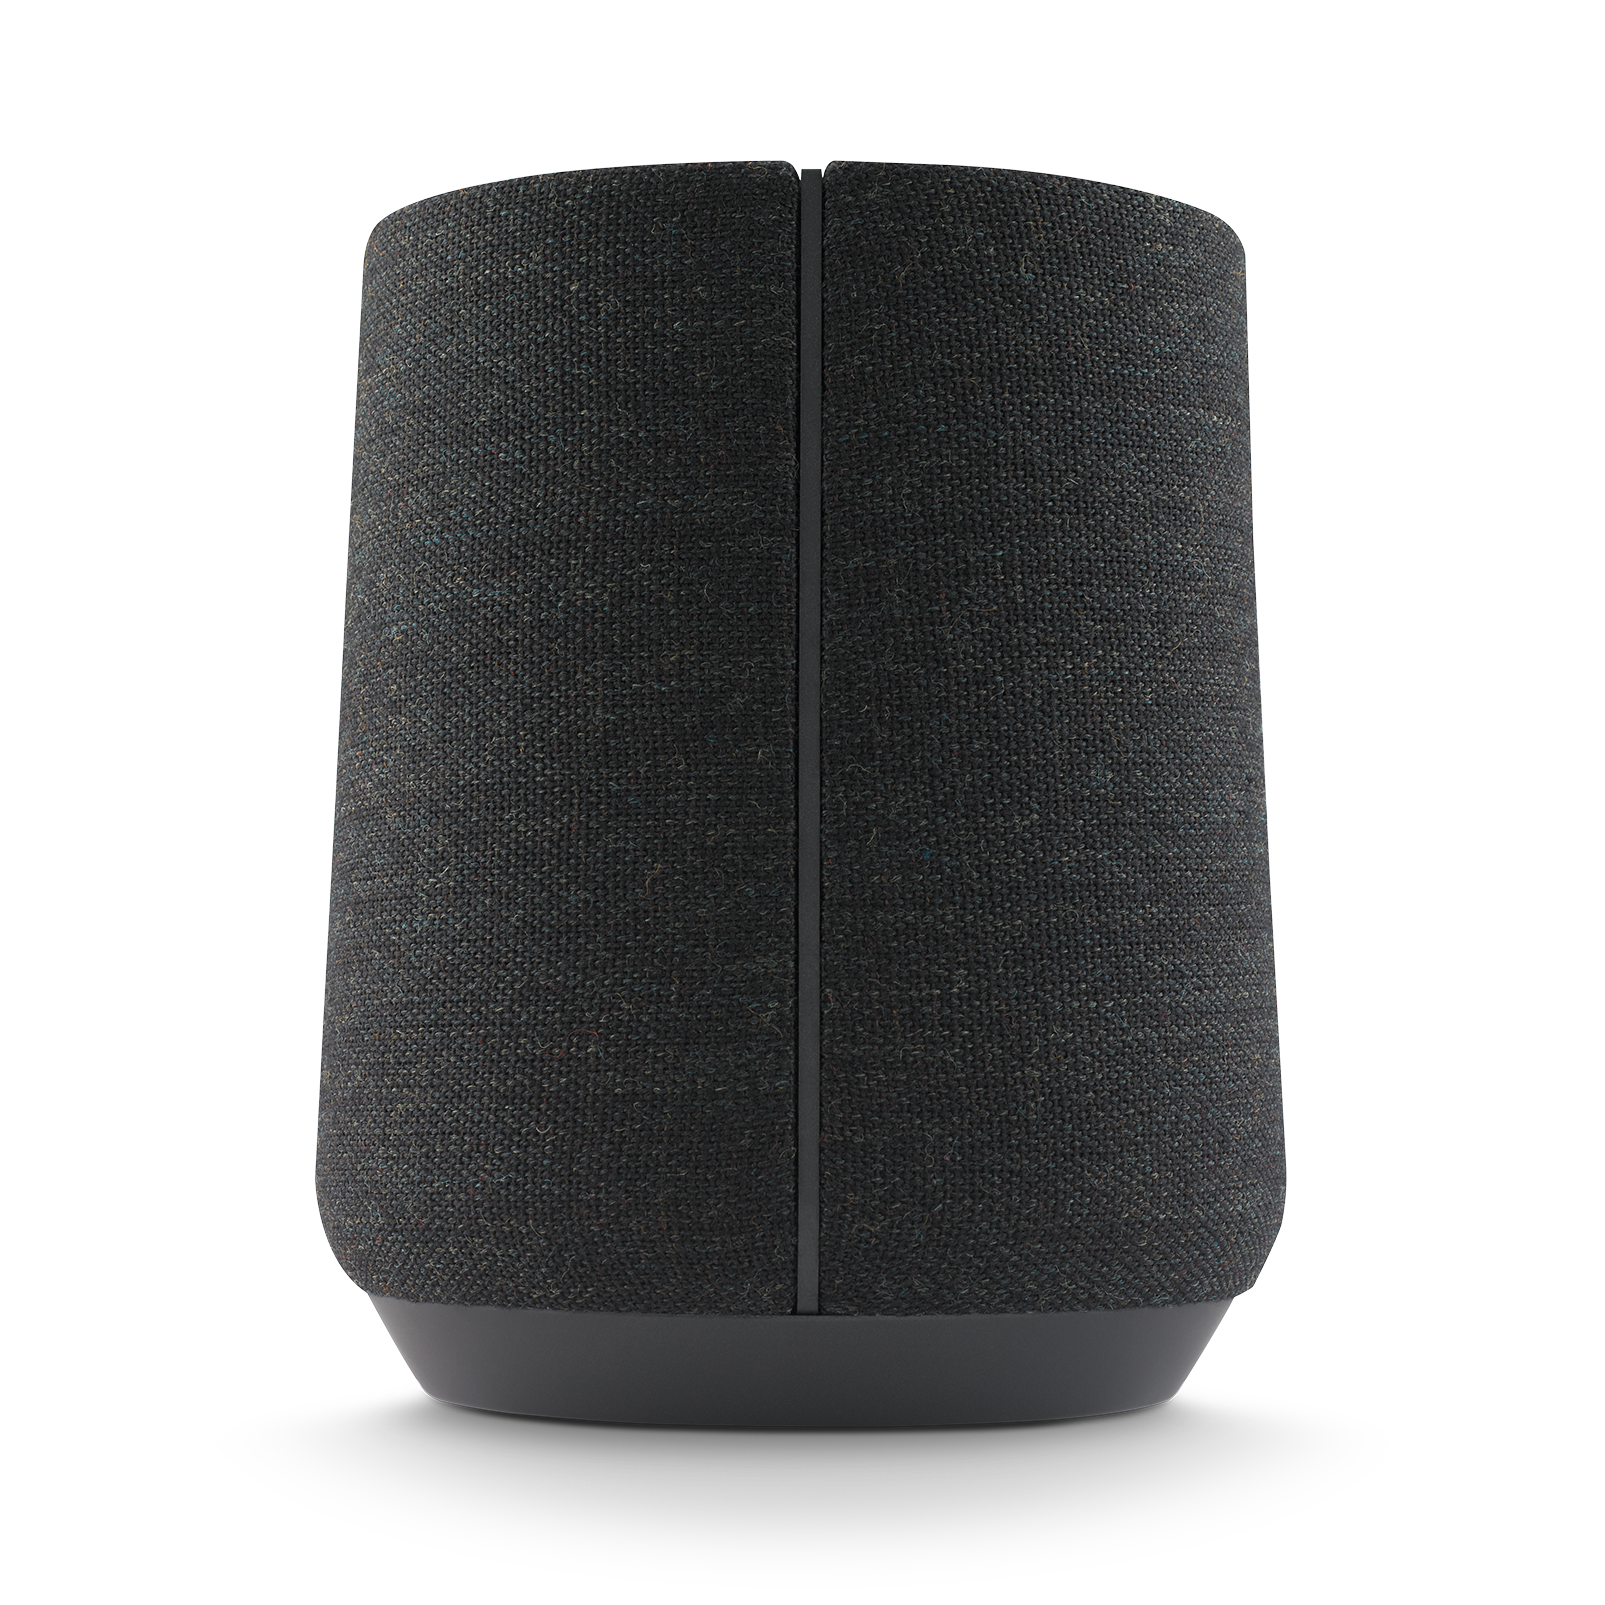 Harman Kardon Citation 300 - Black - The medium-size smart home speaker with award winning design - Detailshot 3